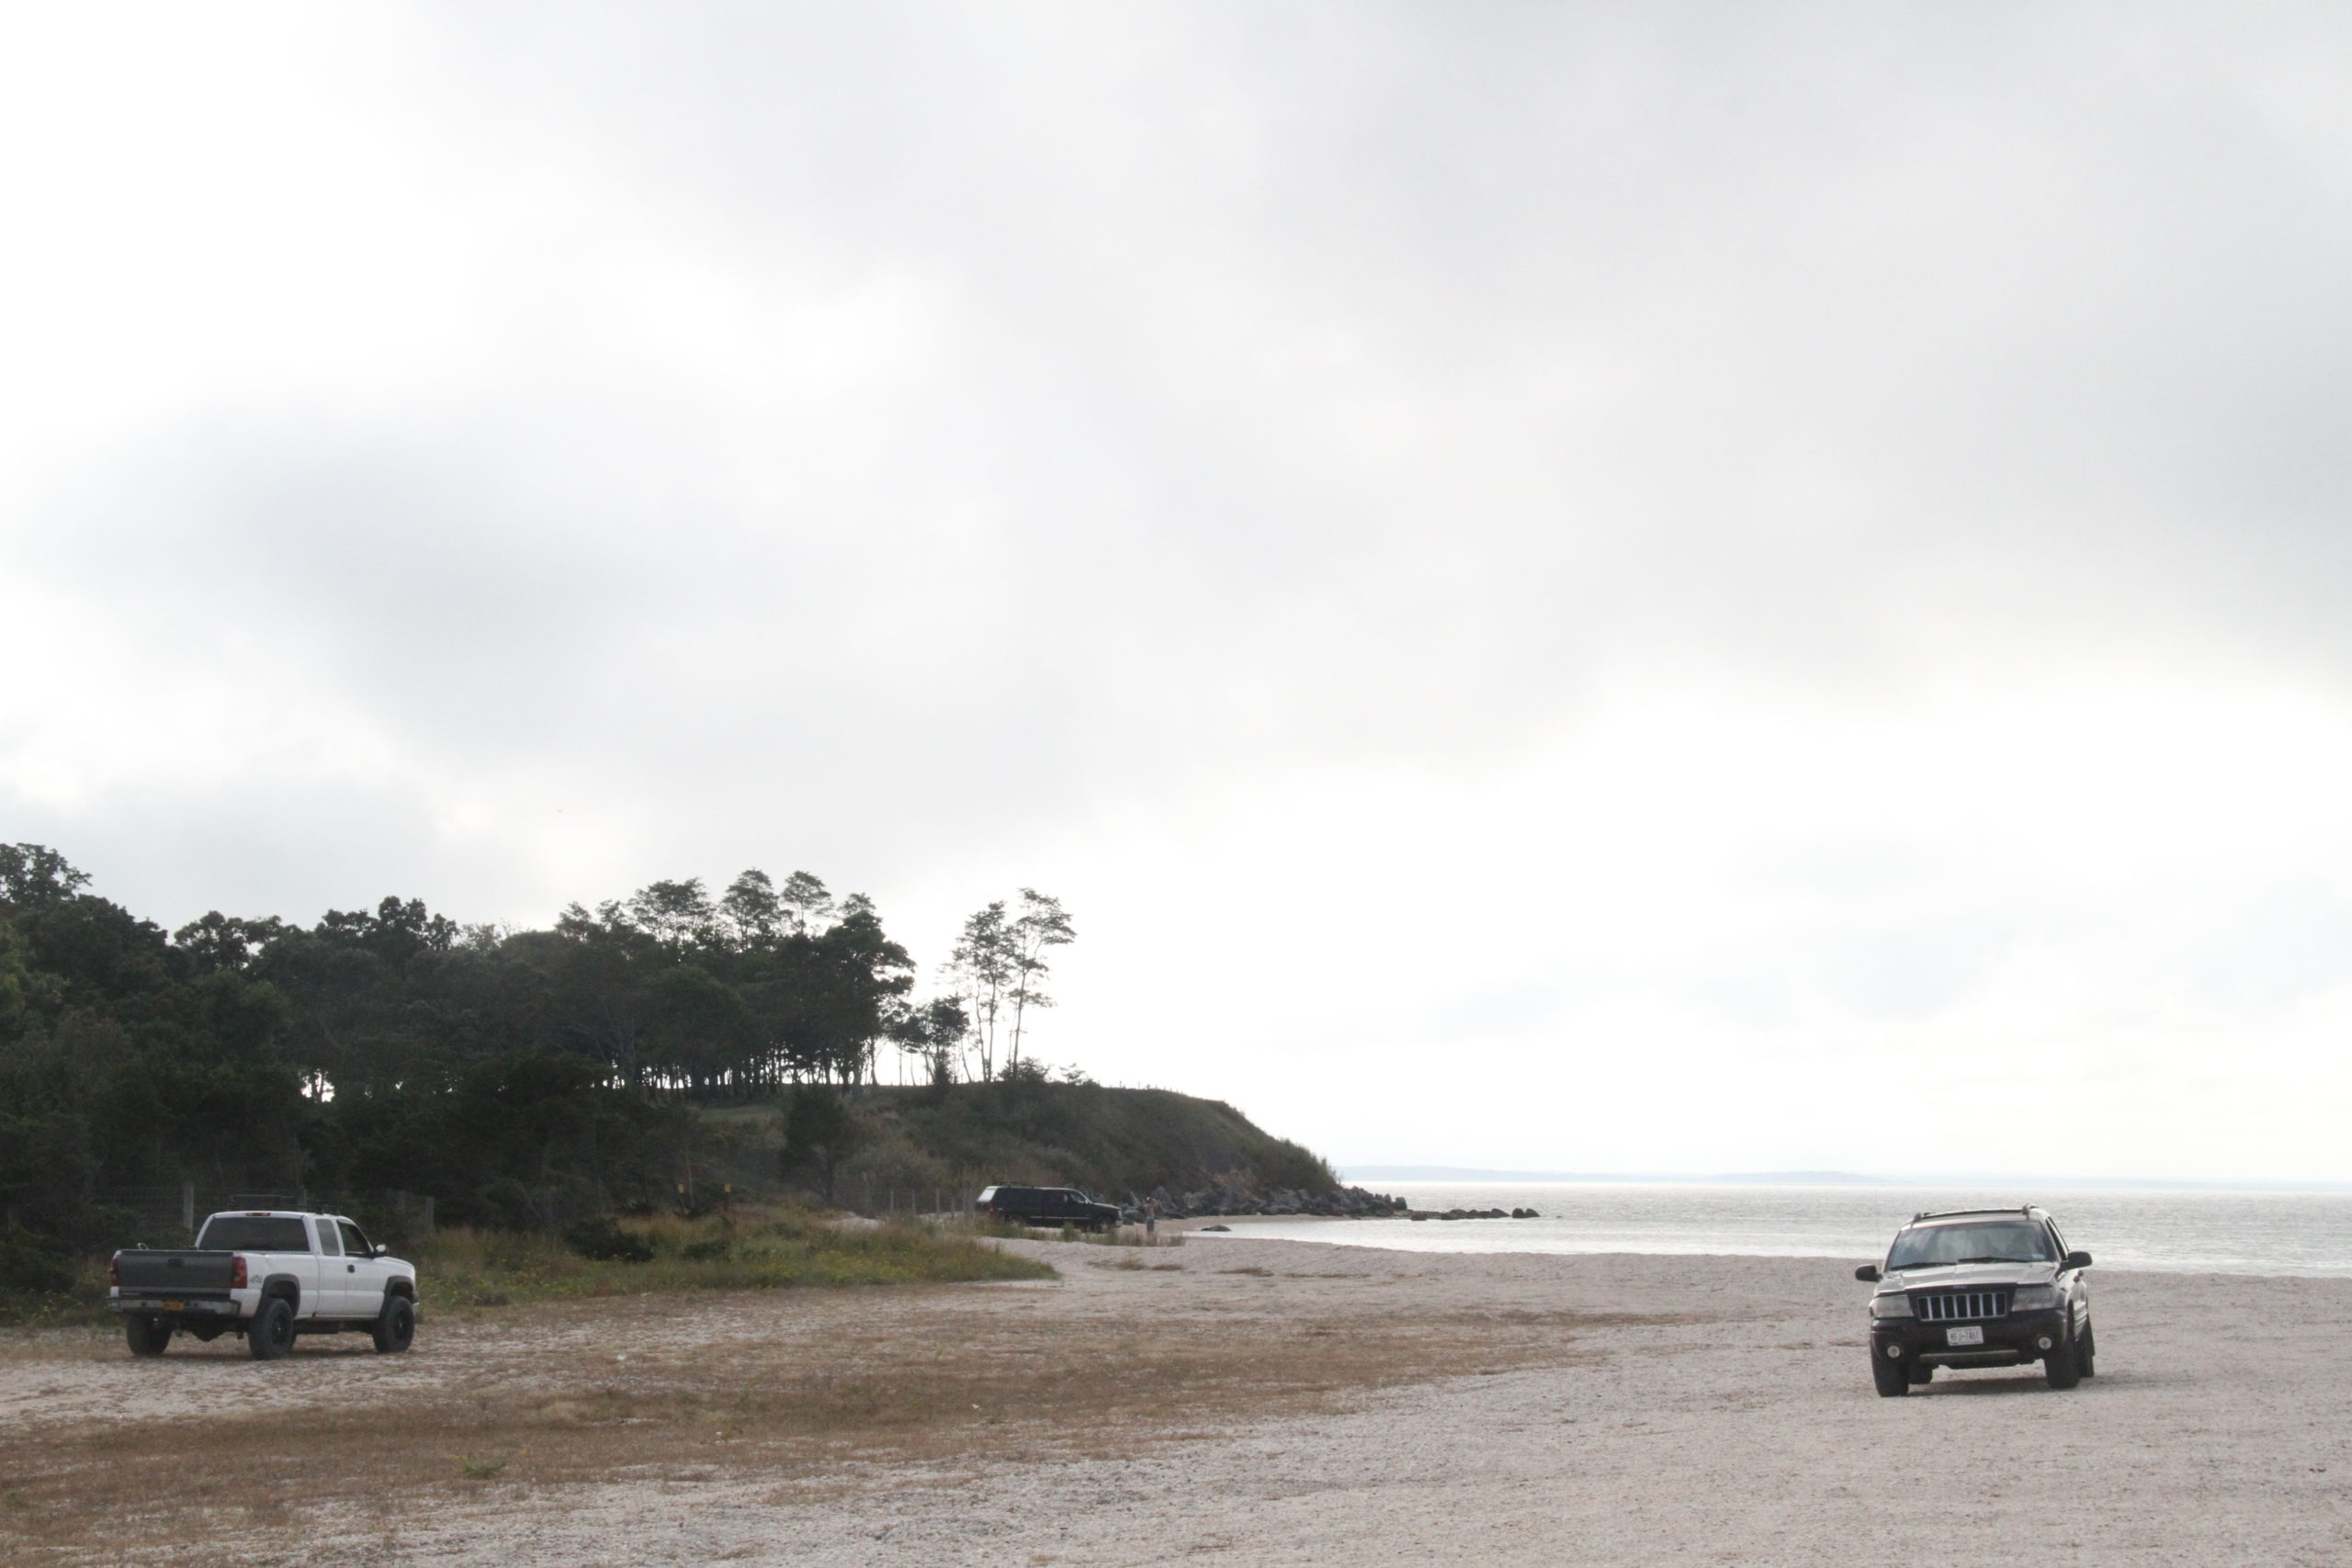 The owner of the 500-acre Cow Neck Preserve has asked the Southampton Town Conservation Board for permission to place boulders across North Sea Beach to prevent 4x4 vehicle access to the western post portions of the beach.